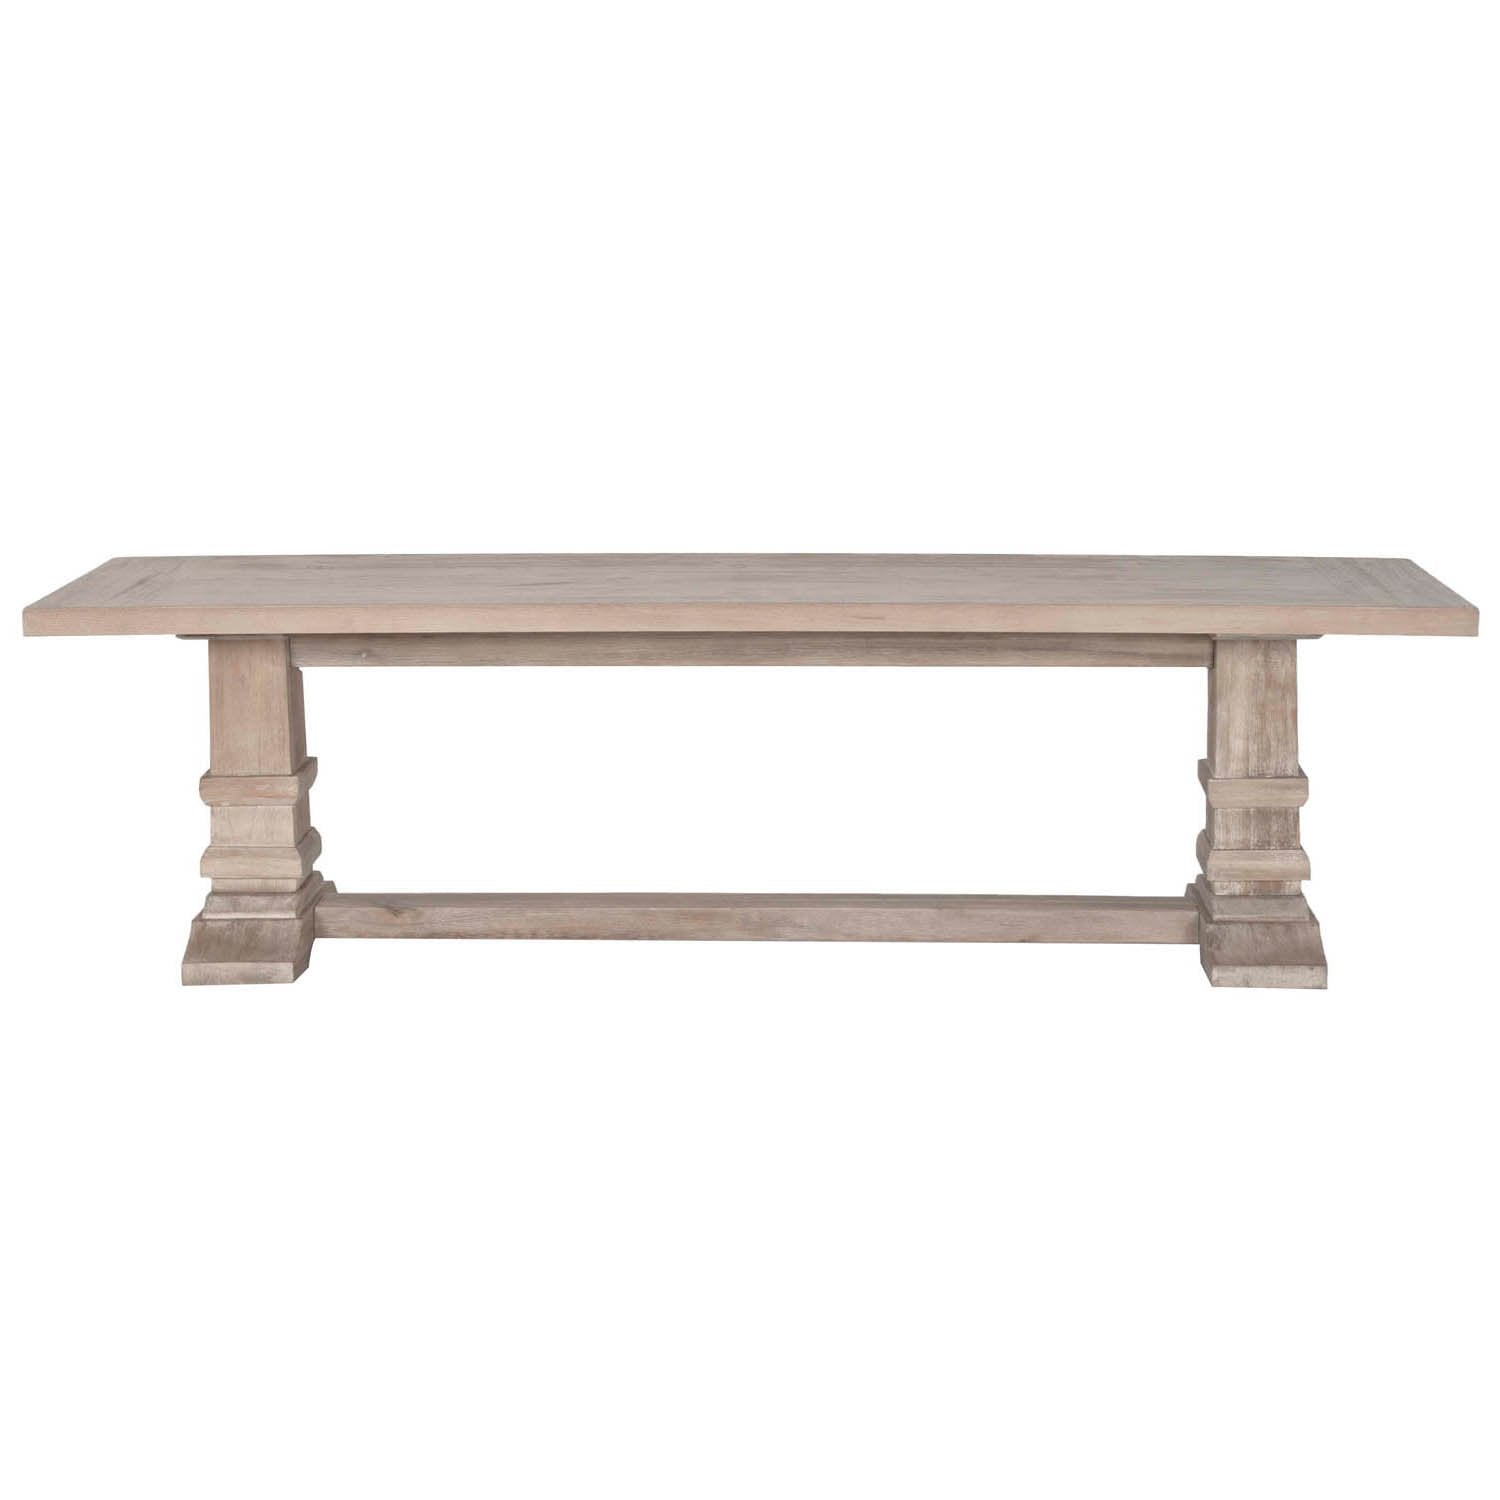 Hudson Large Dining Bench in Stone Wash